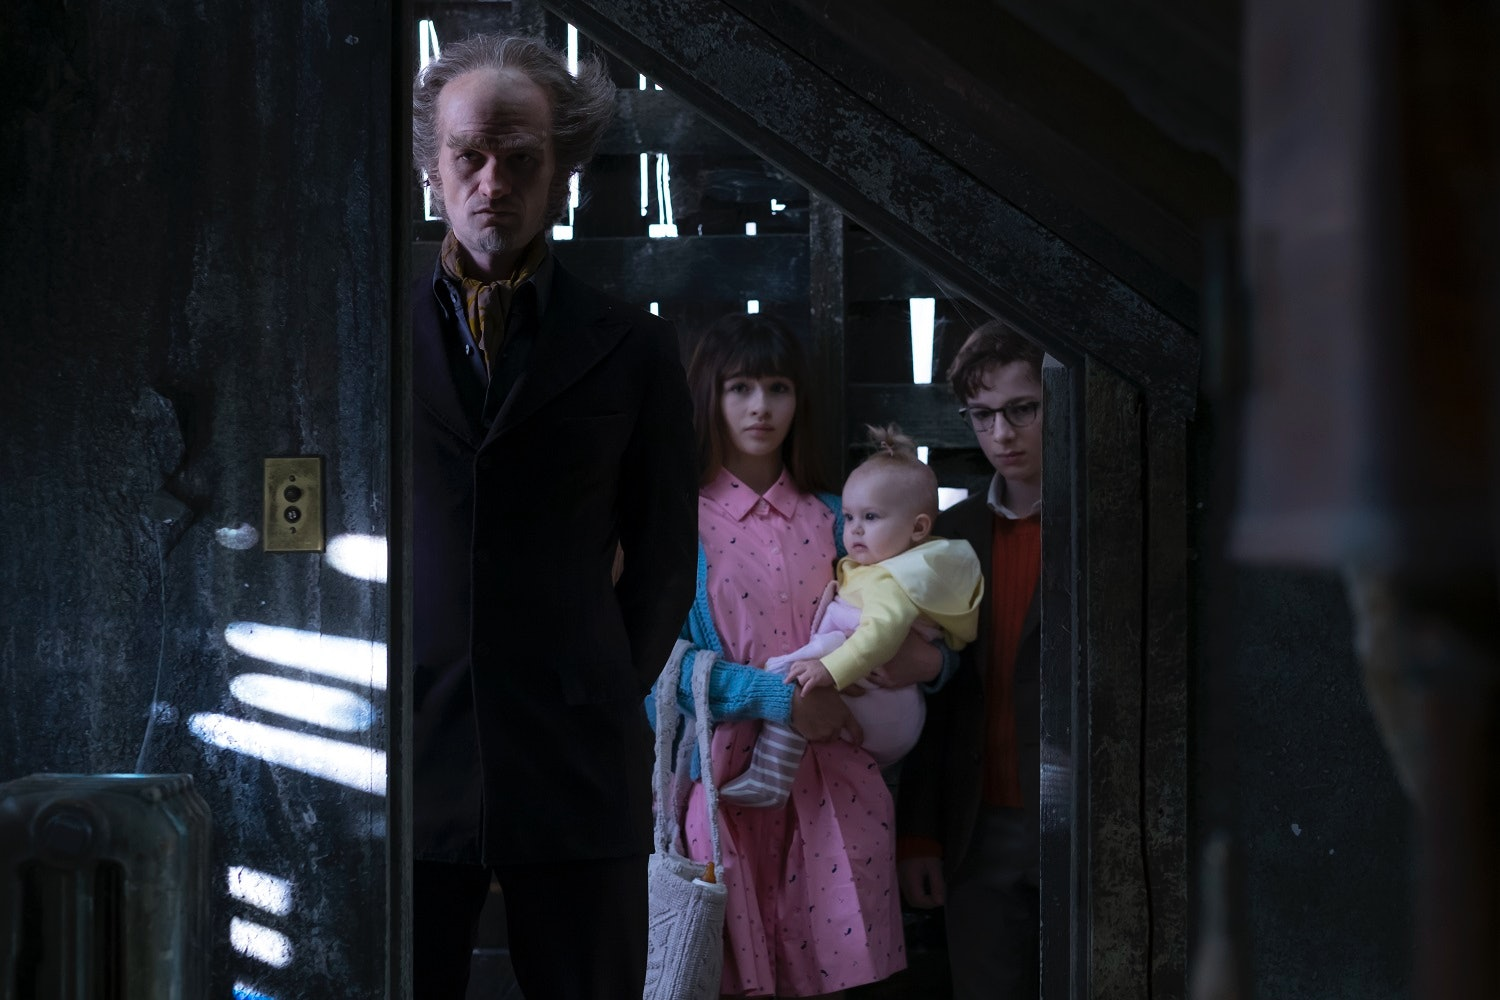 A Series Of Unfortunate Events Set